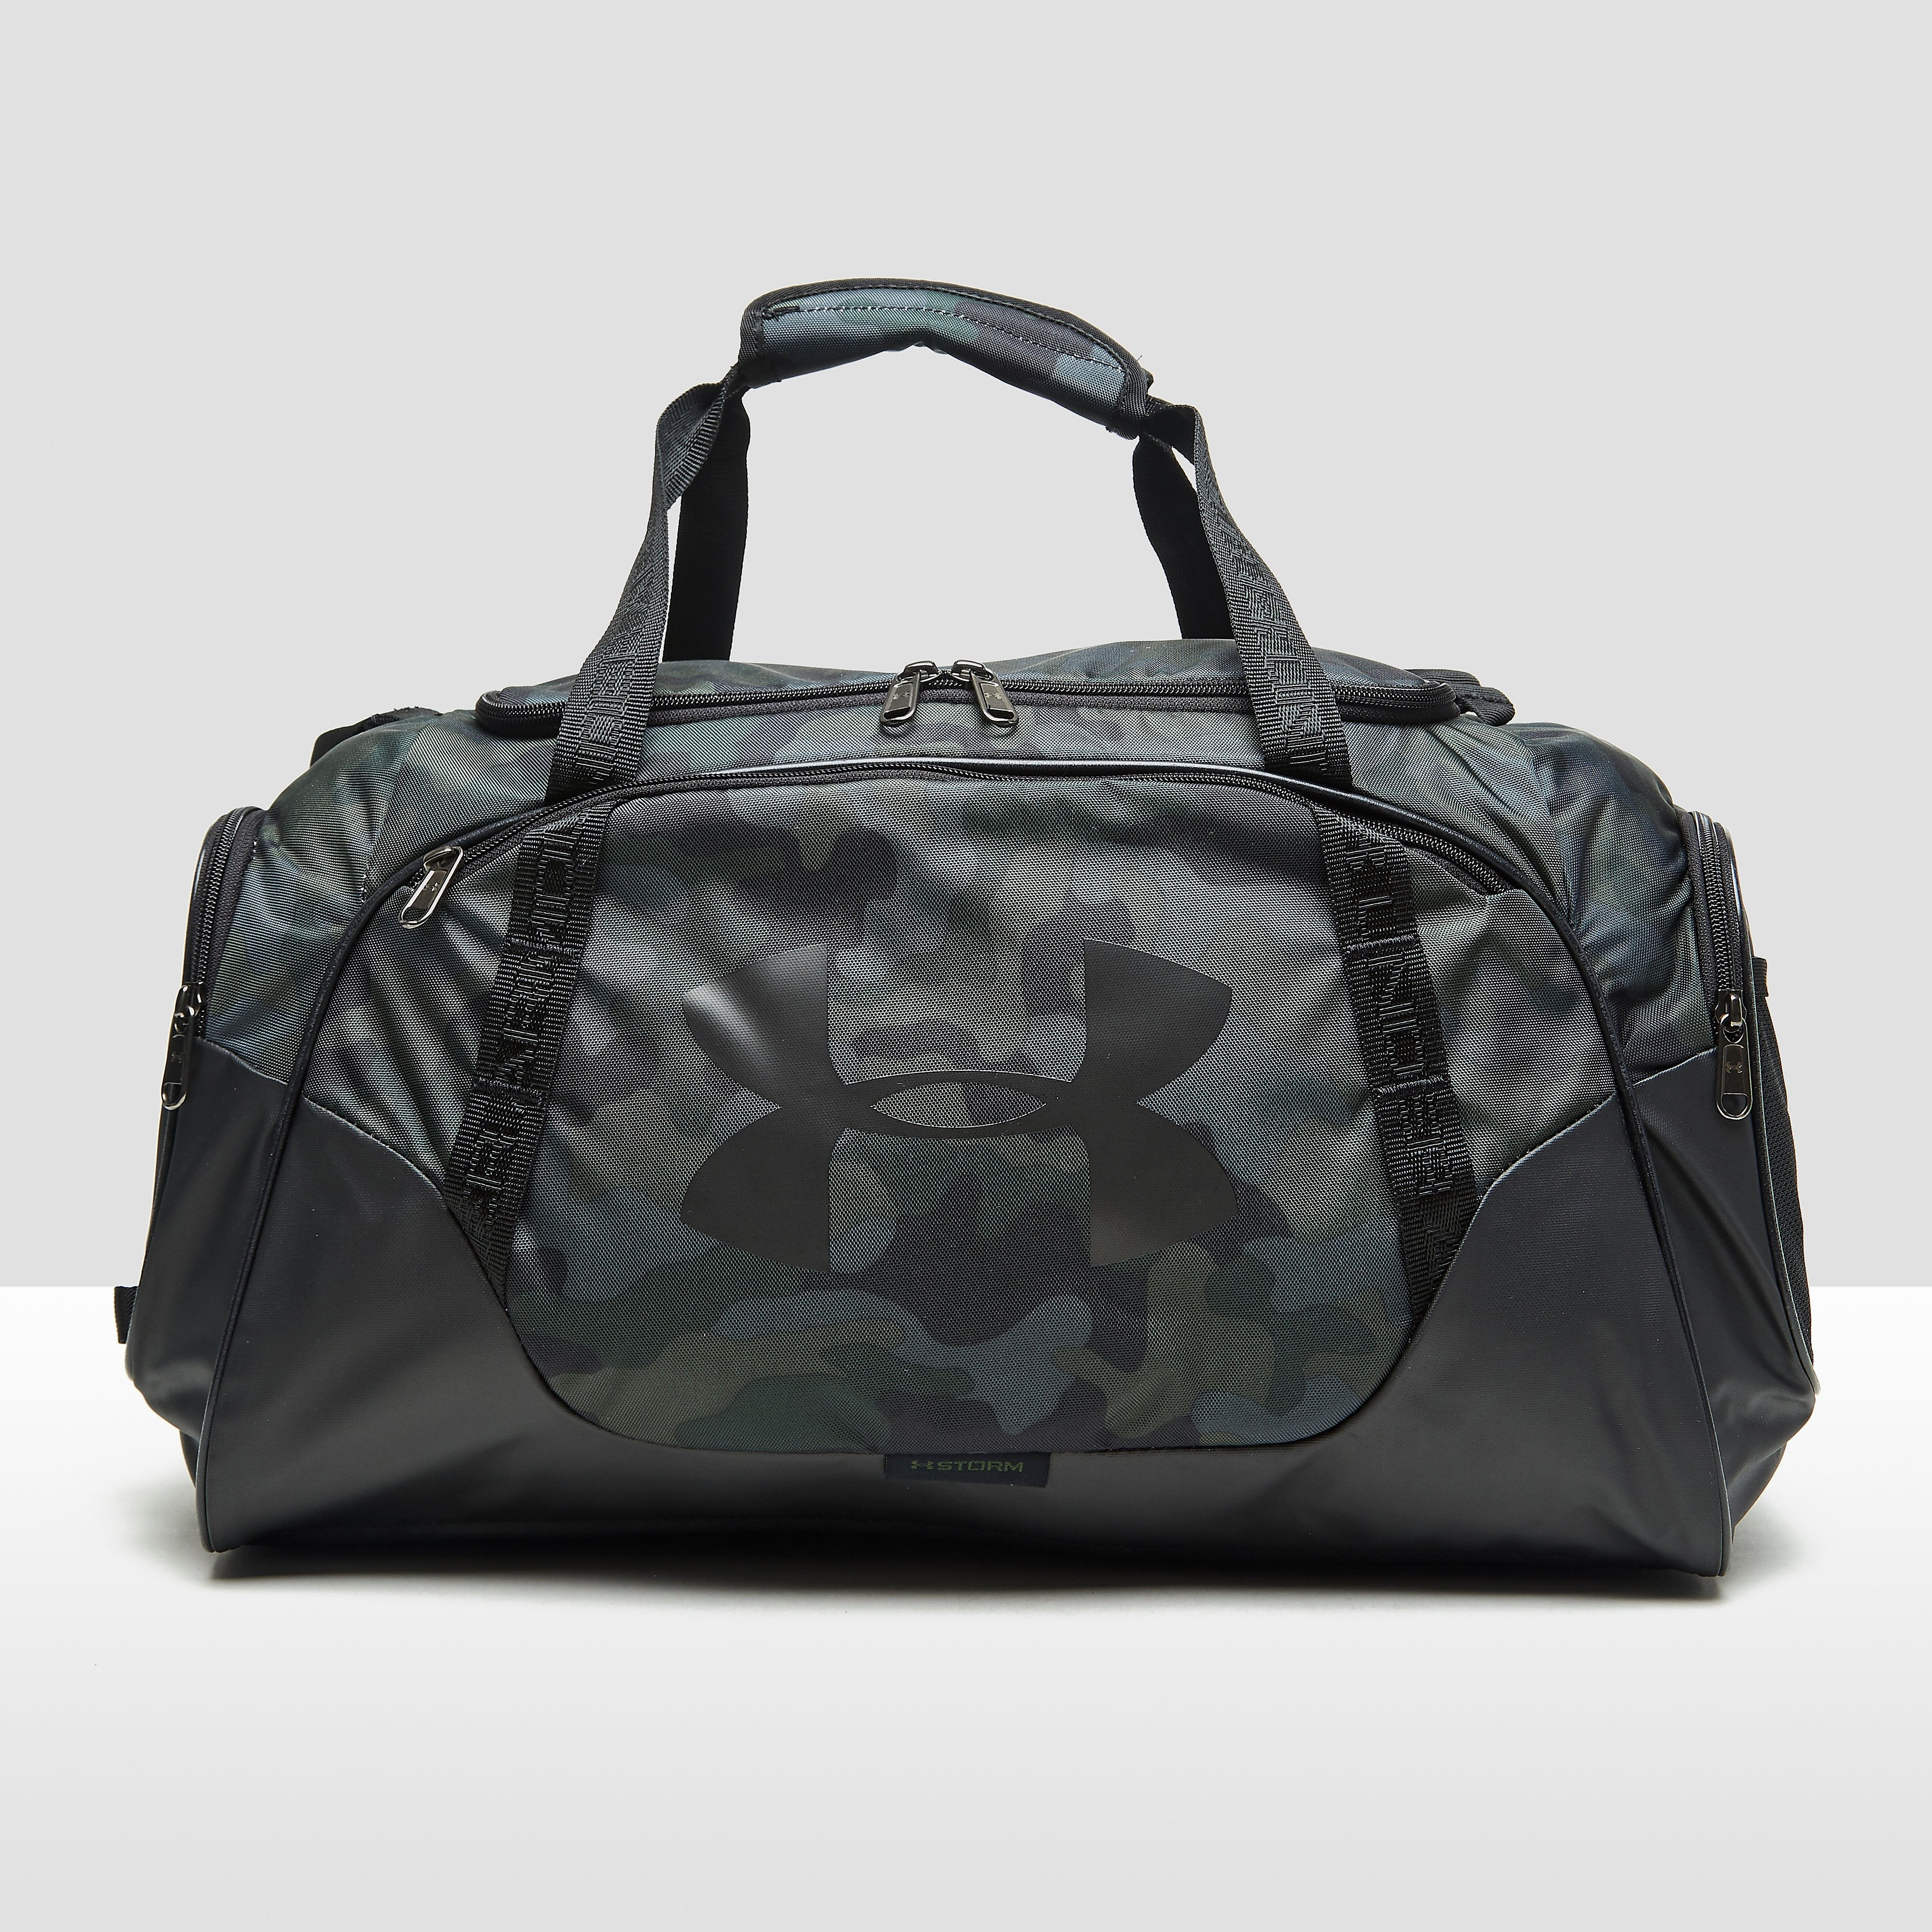 UNDER ARMOUR UNDENIABLE DUFFLE 3.0 SPORTTAS CAMOUFLAGE